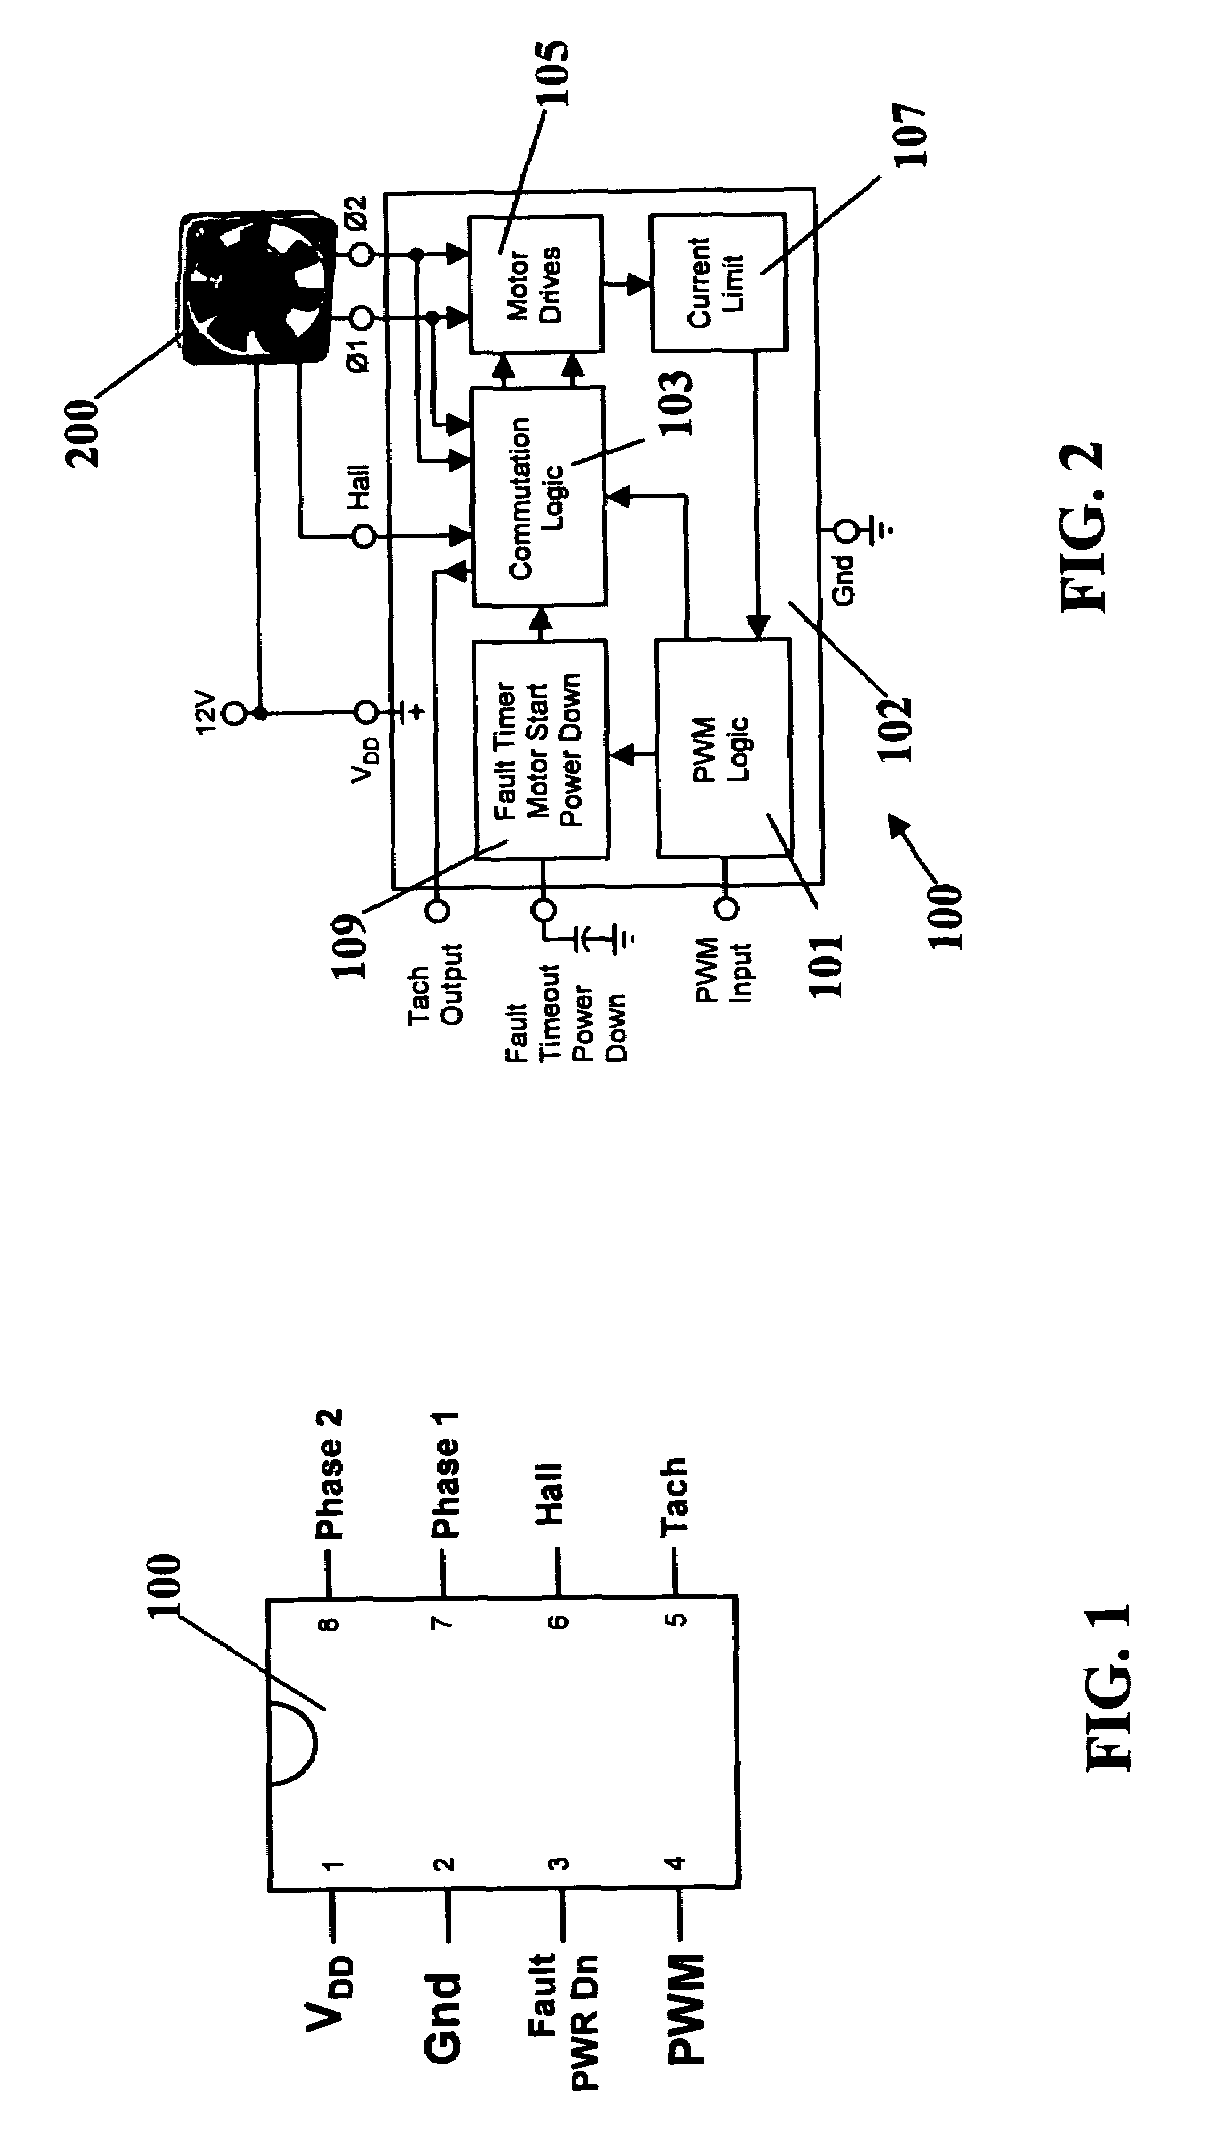 patent us7276867 - controller arrangement with adaptive non-overlapping commutation